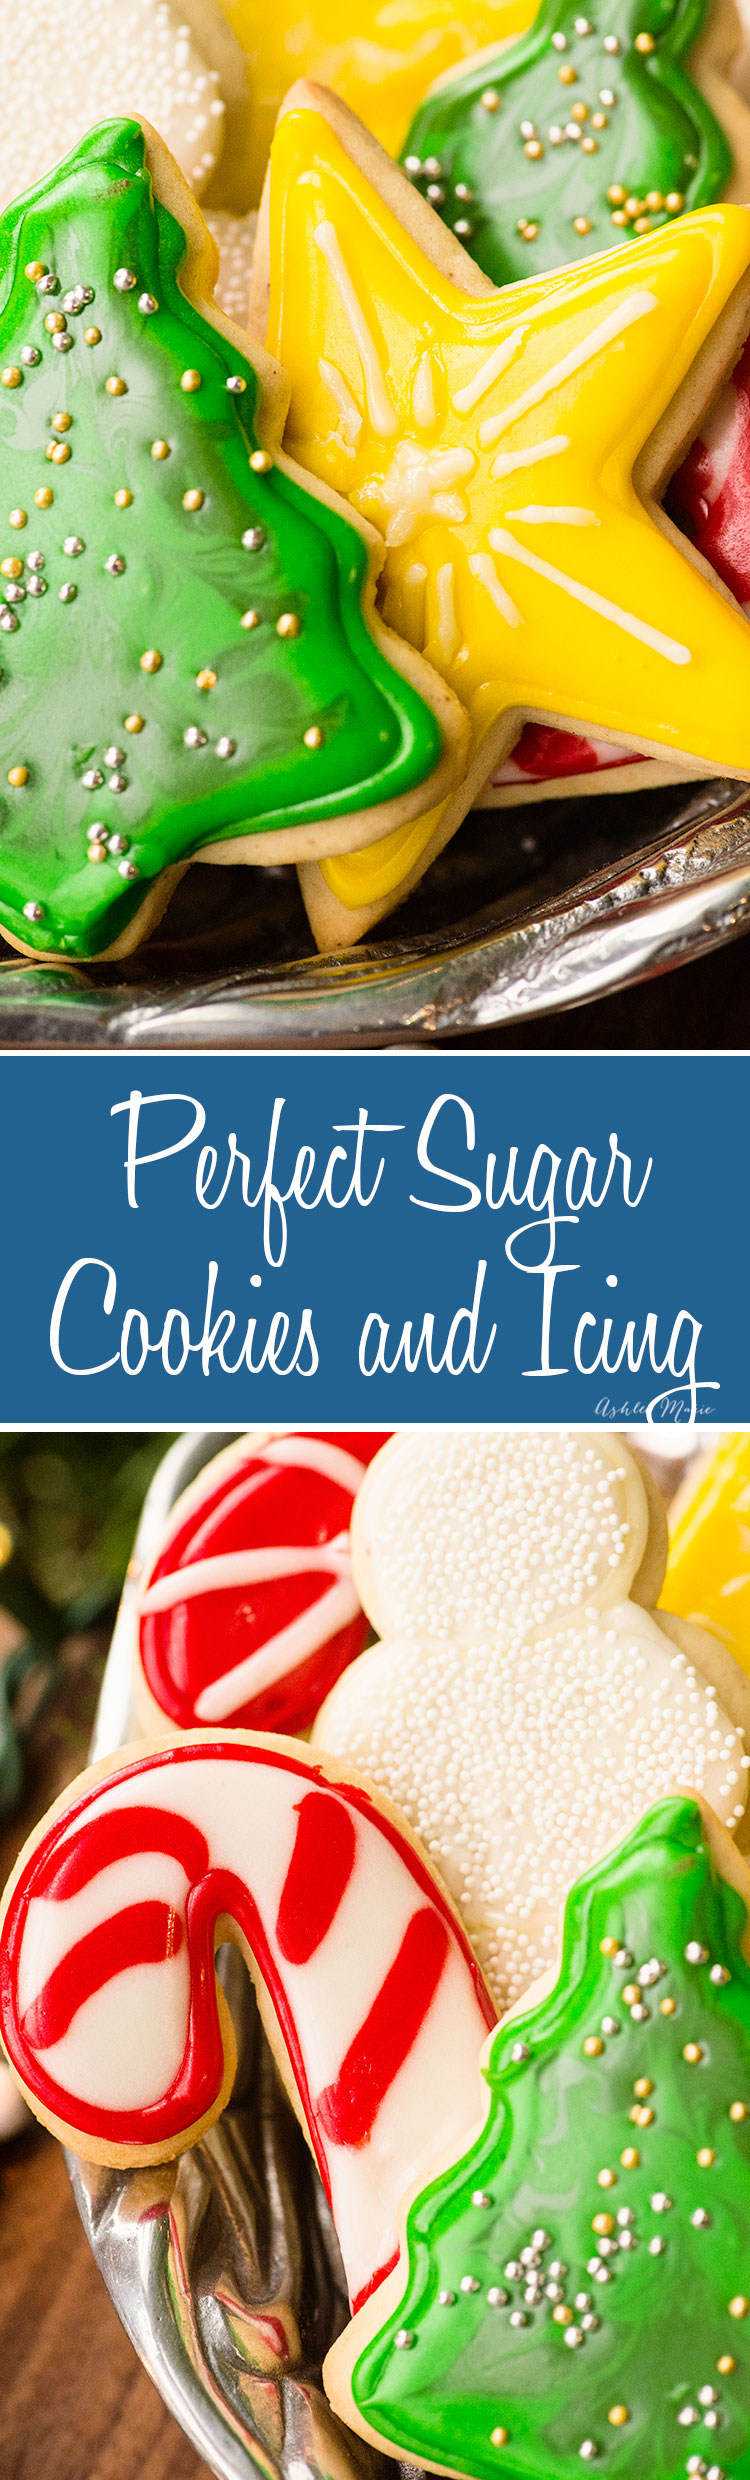 easy and delicious sugar cookie recipes with a video tutorial including tips for decorating